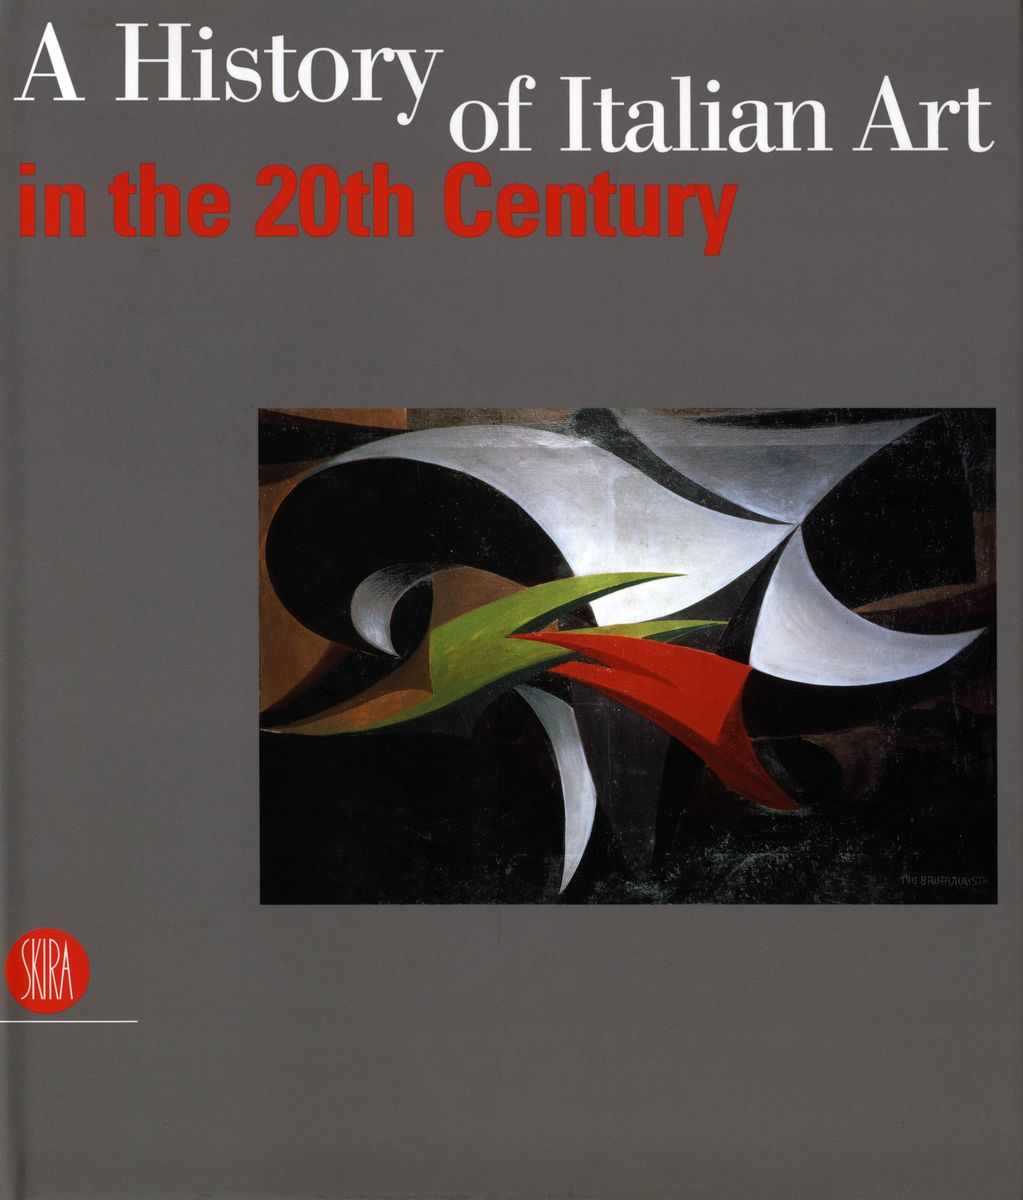 A History of Italian Art in the 20th Century по 1 299.00 руб от изд. Skira Editore